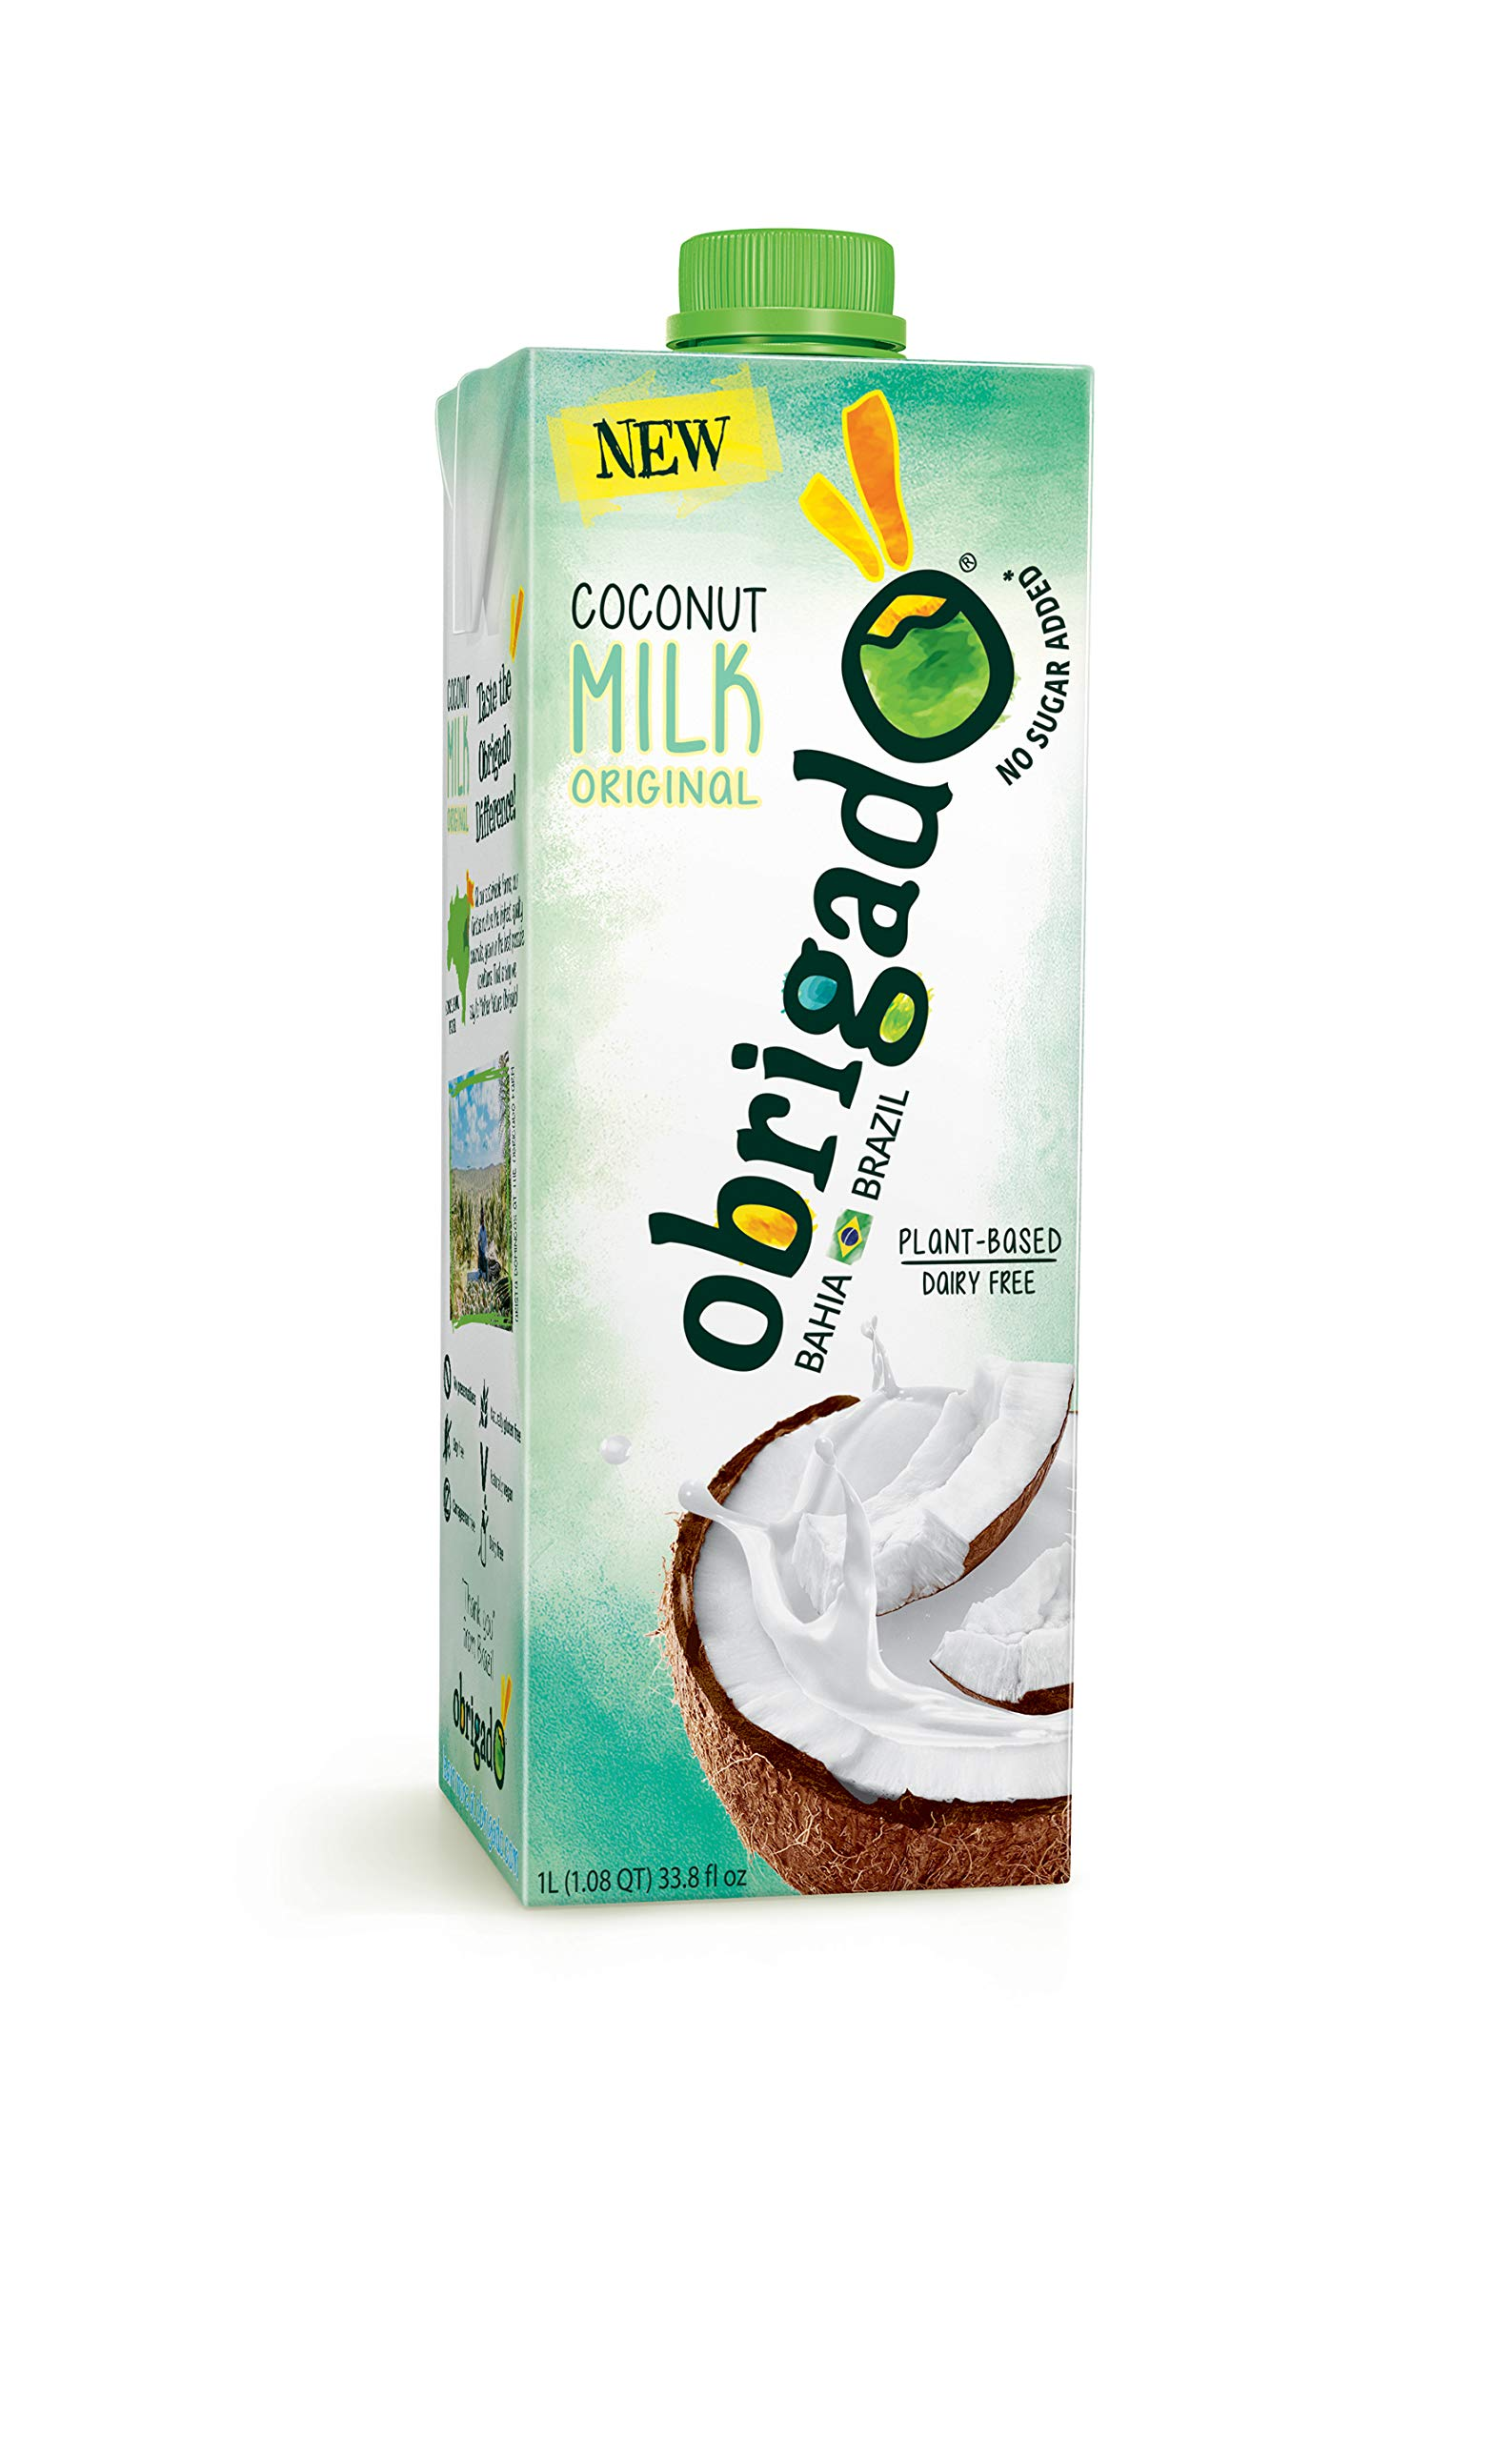 Obrigado Coconut Milk from Brazil - Grown on Sustainable Farms, Never from Concentrate, No Added Sugar or Preservatives (1 Pack)